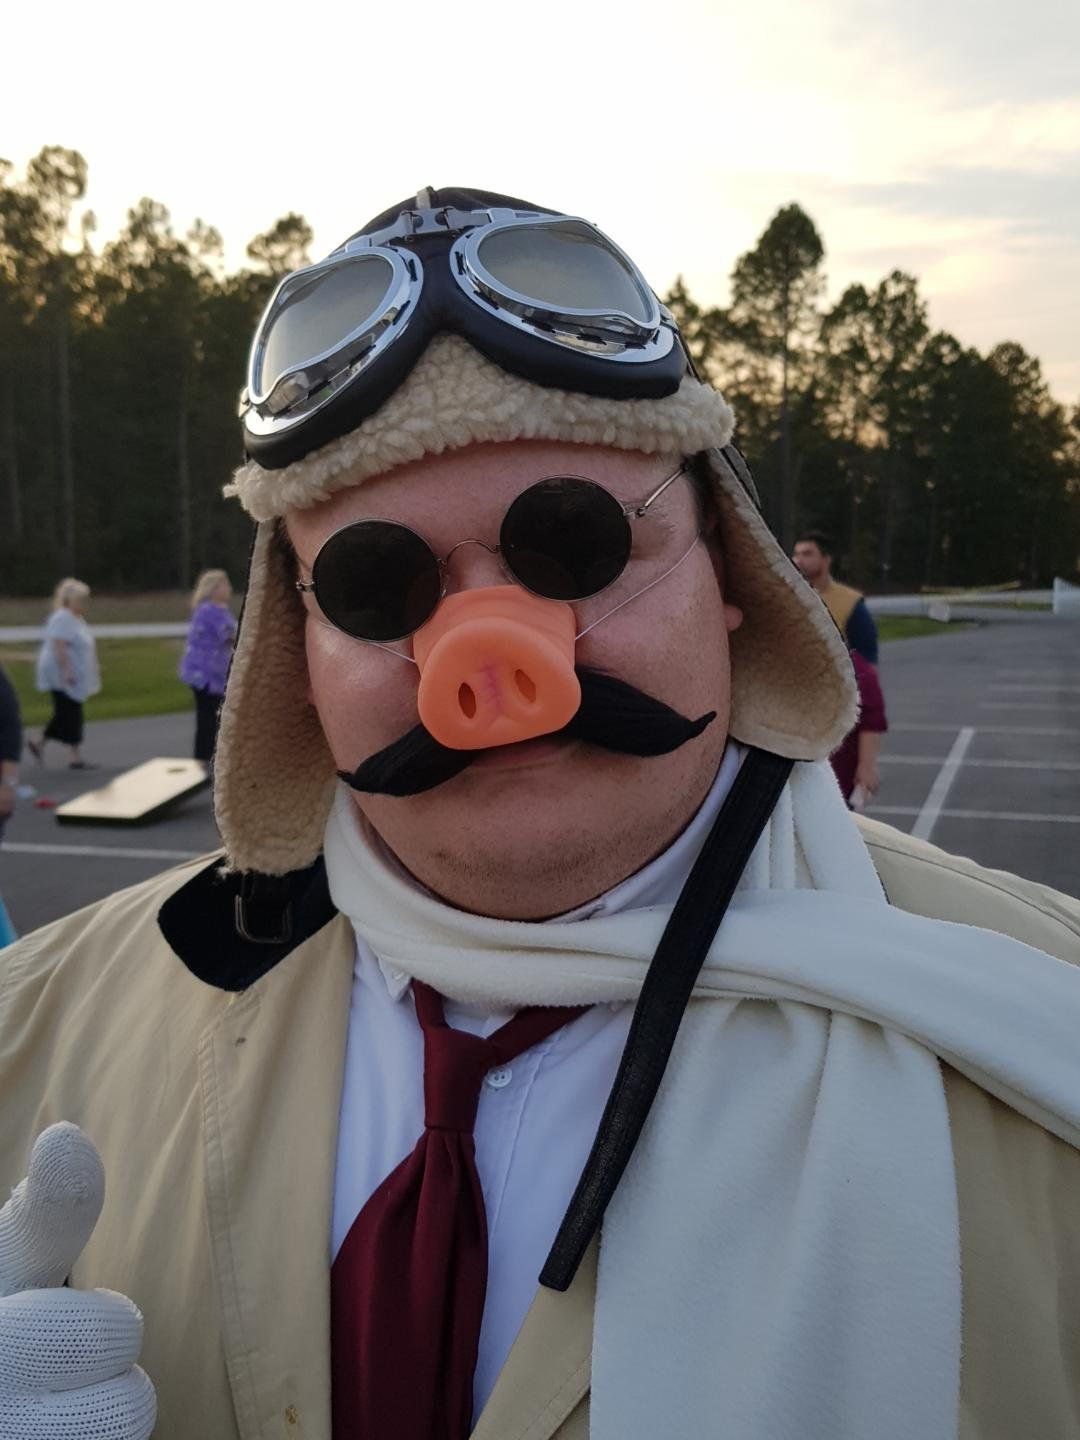 The Crimson Pig himself! Porco Rosso! Halloween costume